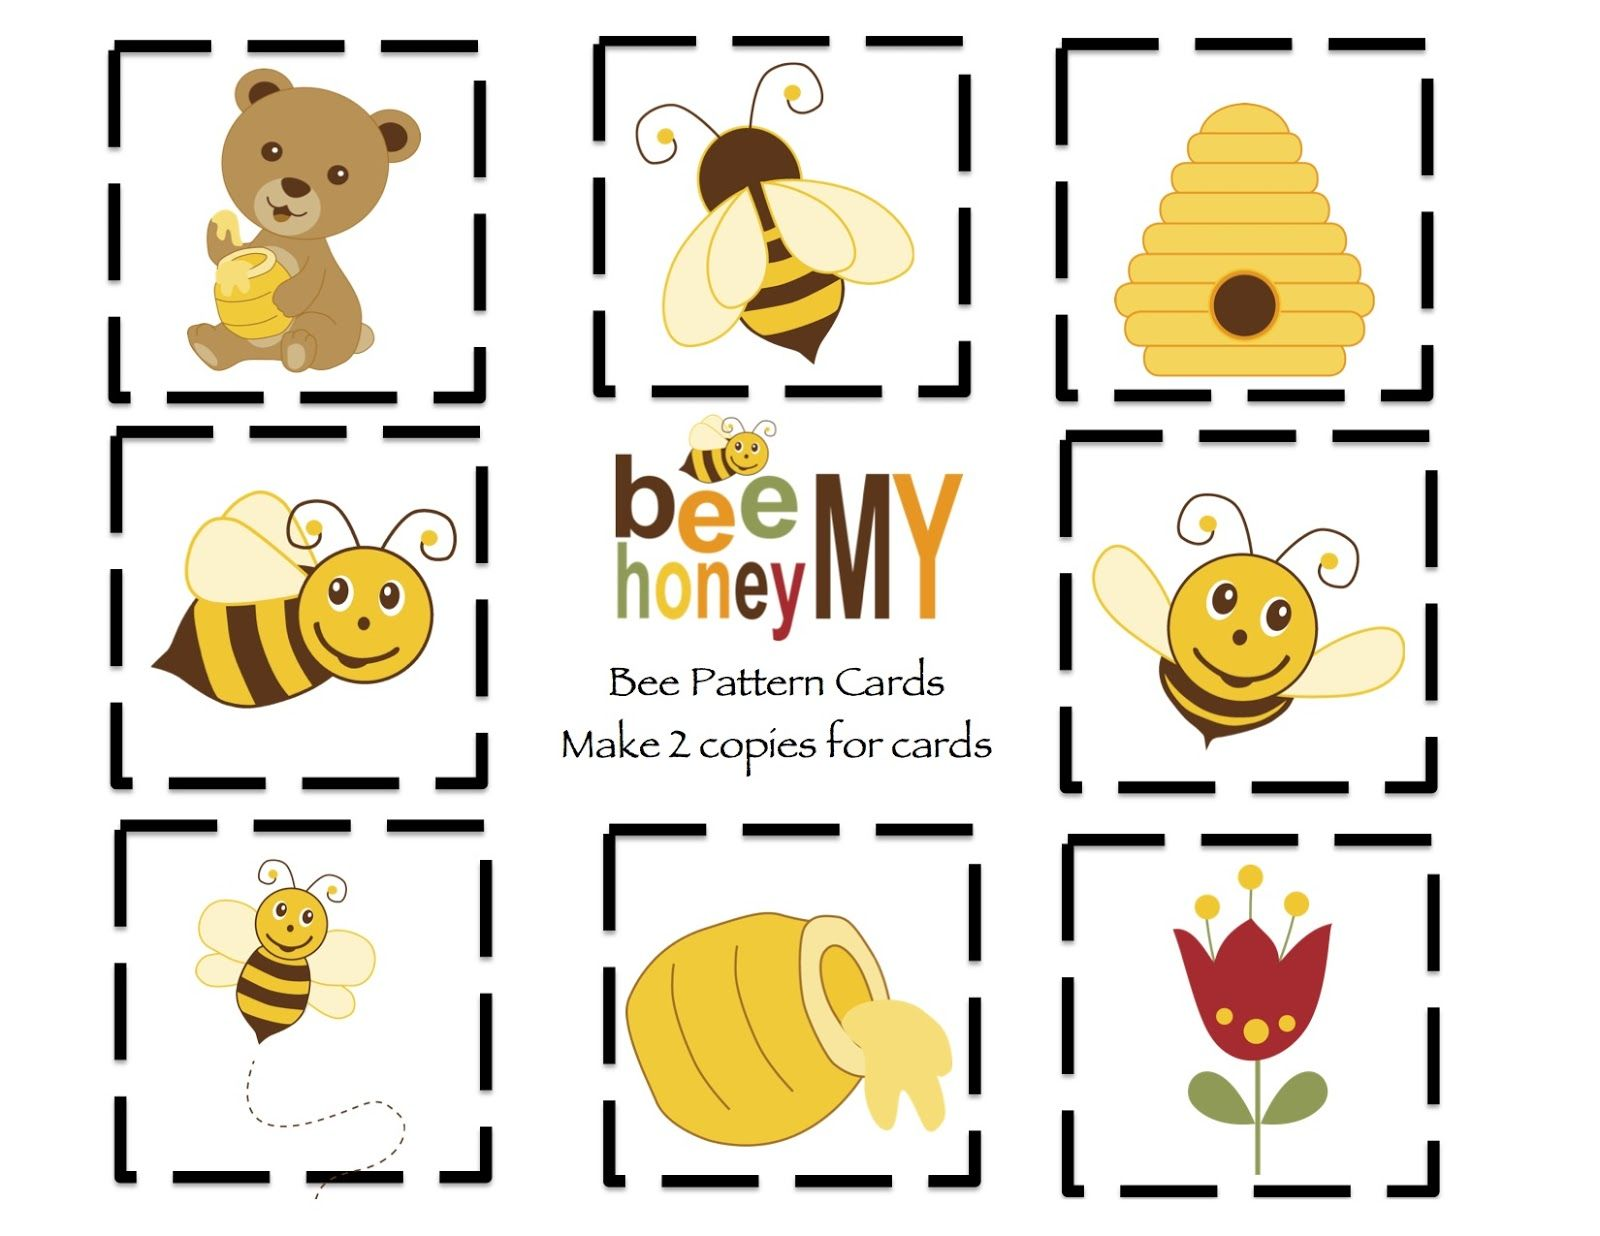 photograph regarding Beehive Printable called 12 Wonderful printable beehive routine pictures sbook